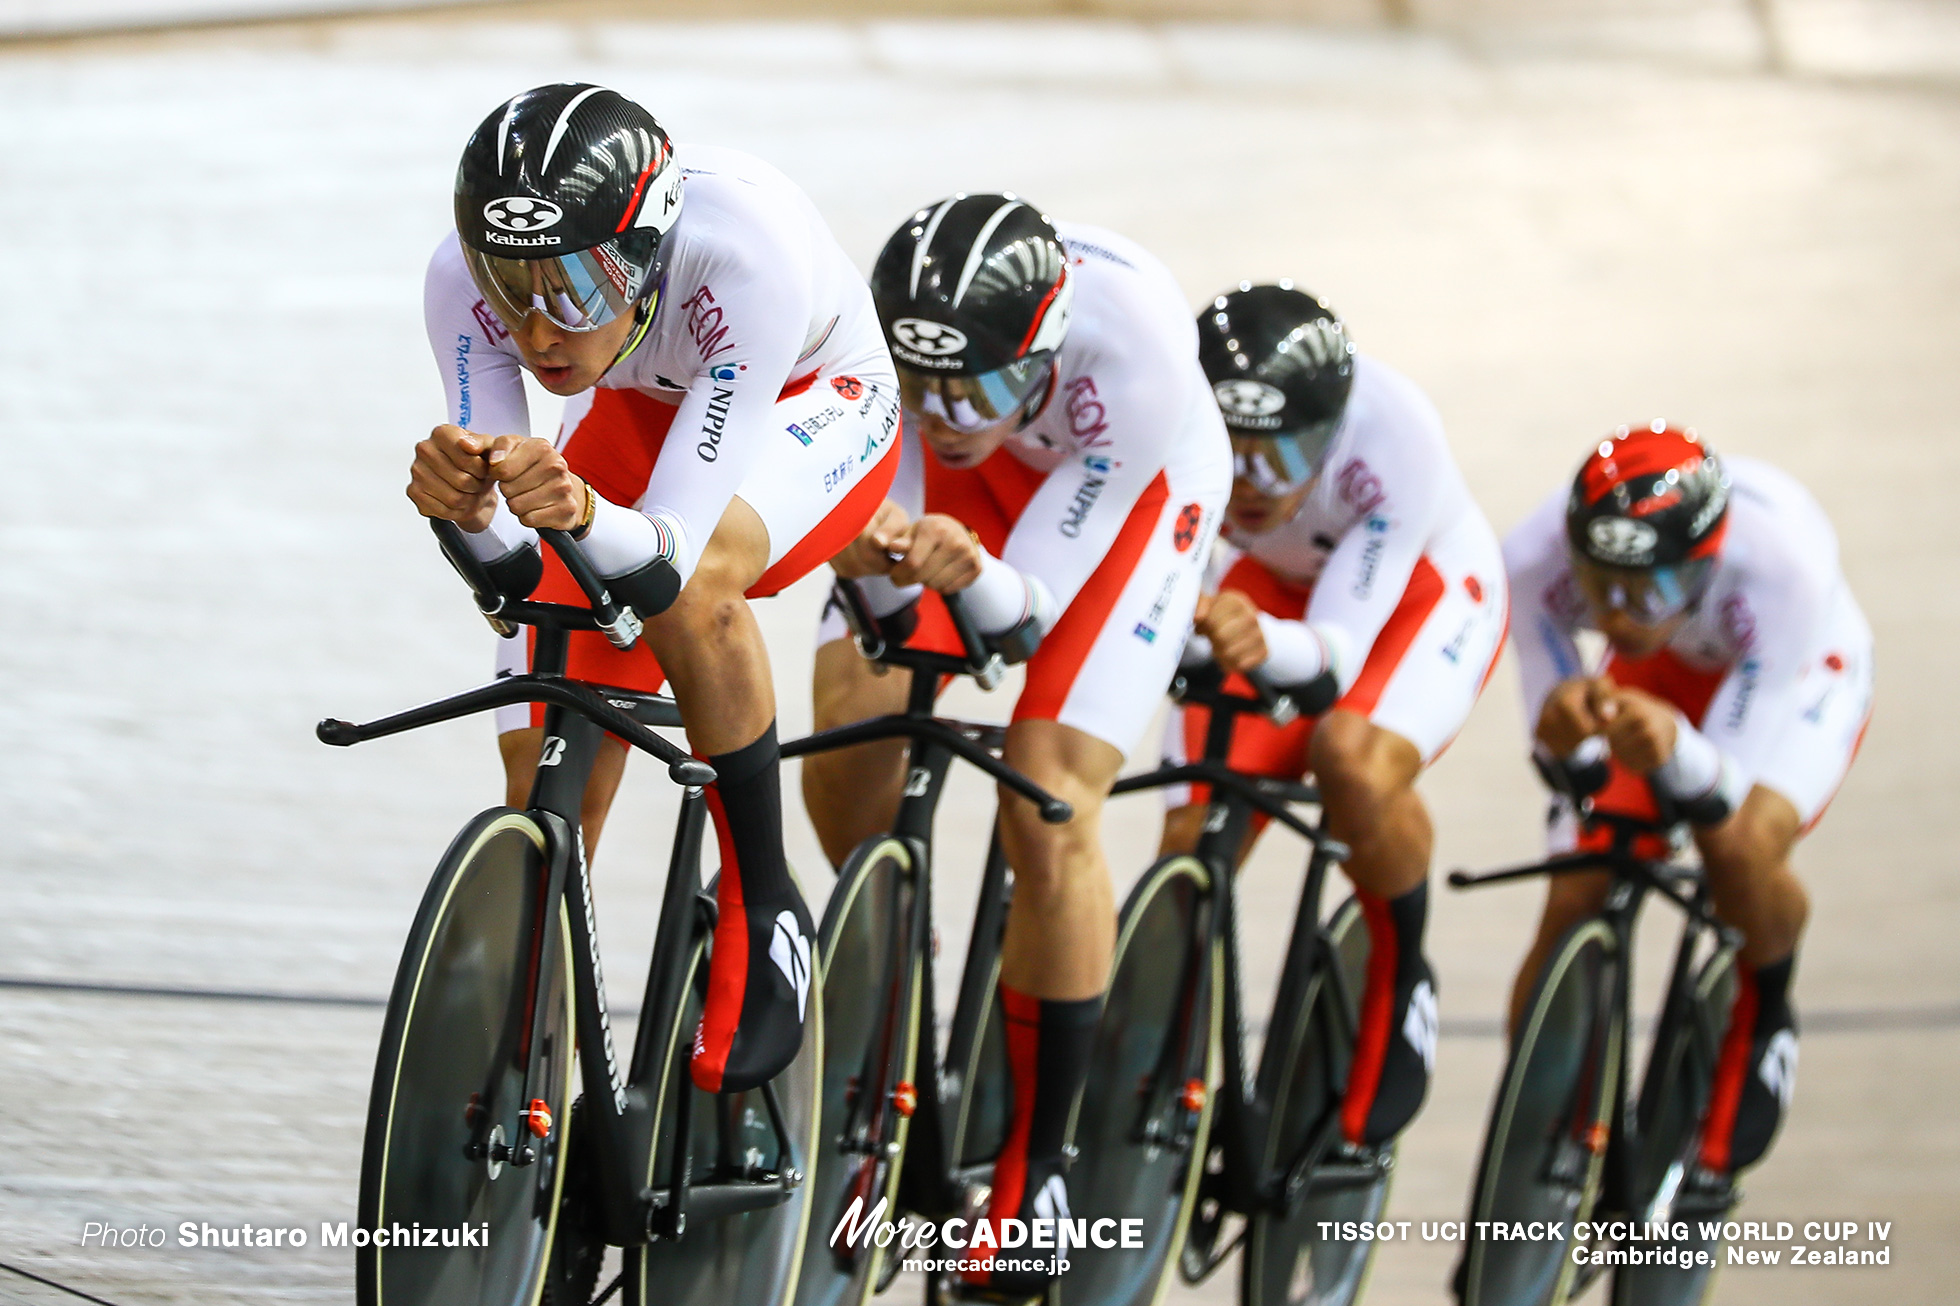 Men's Team Pursuit / TISSOT UCI TRACK CYCLING WORLD CUP IV, Cambridge, New Zealand, 近谷涼 今村駿介 窪木一茂 沢田桂太郎